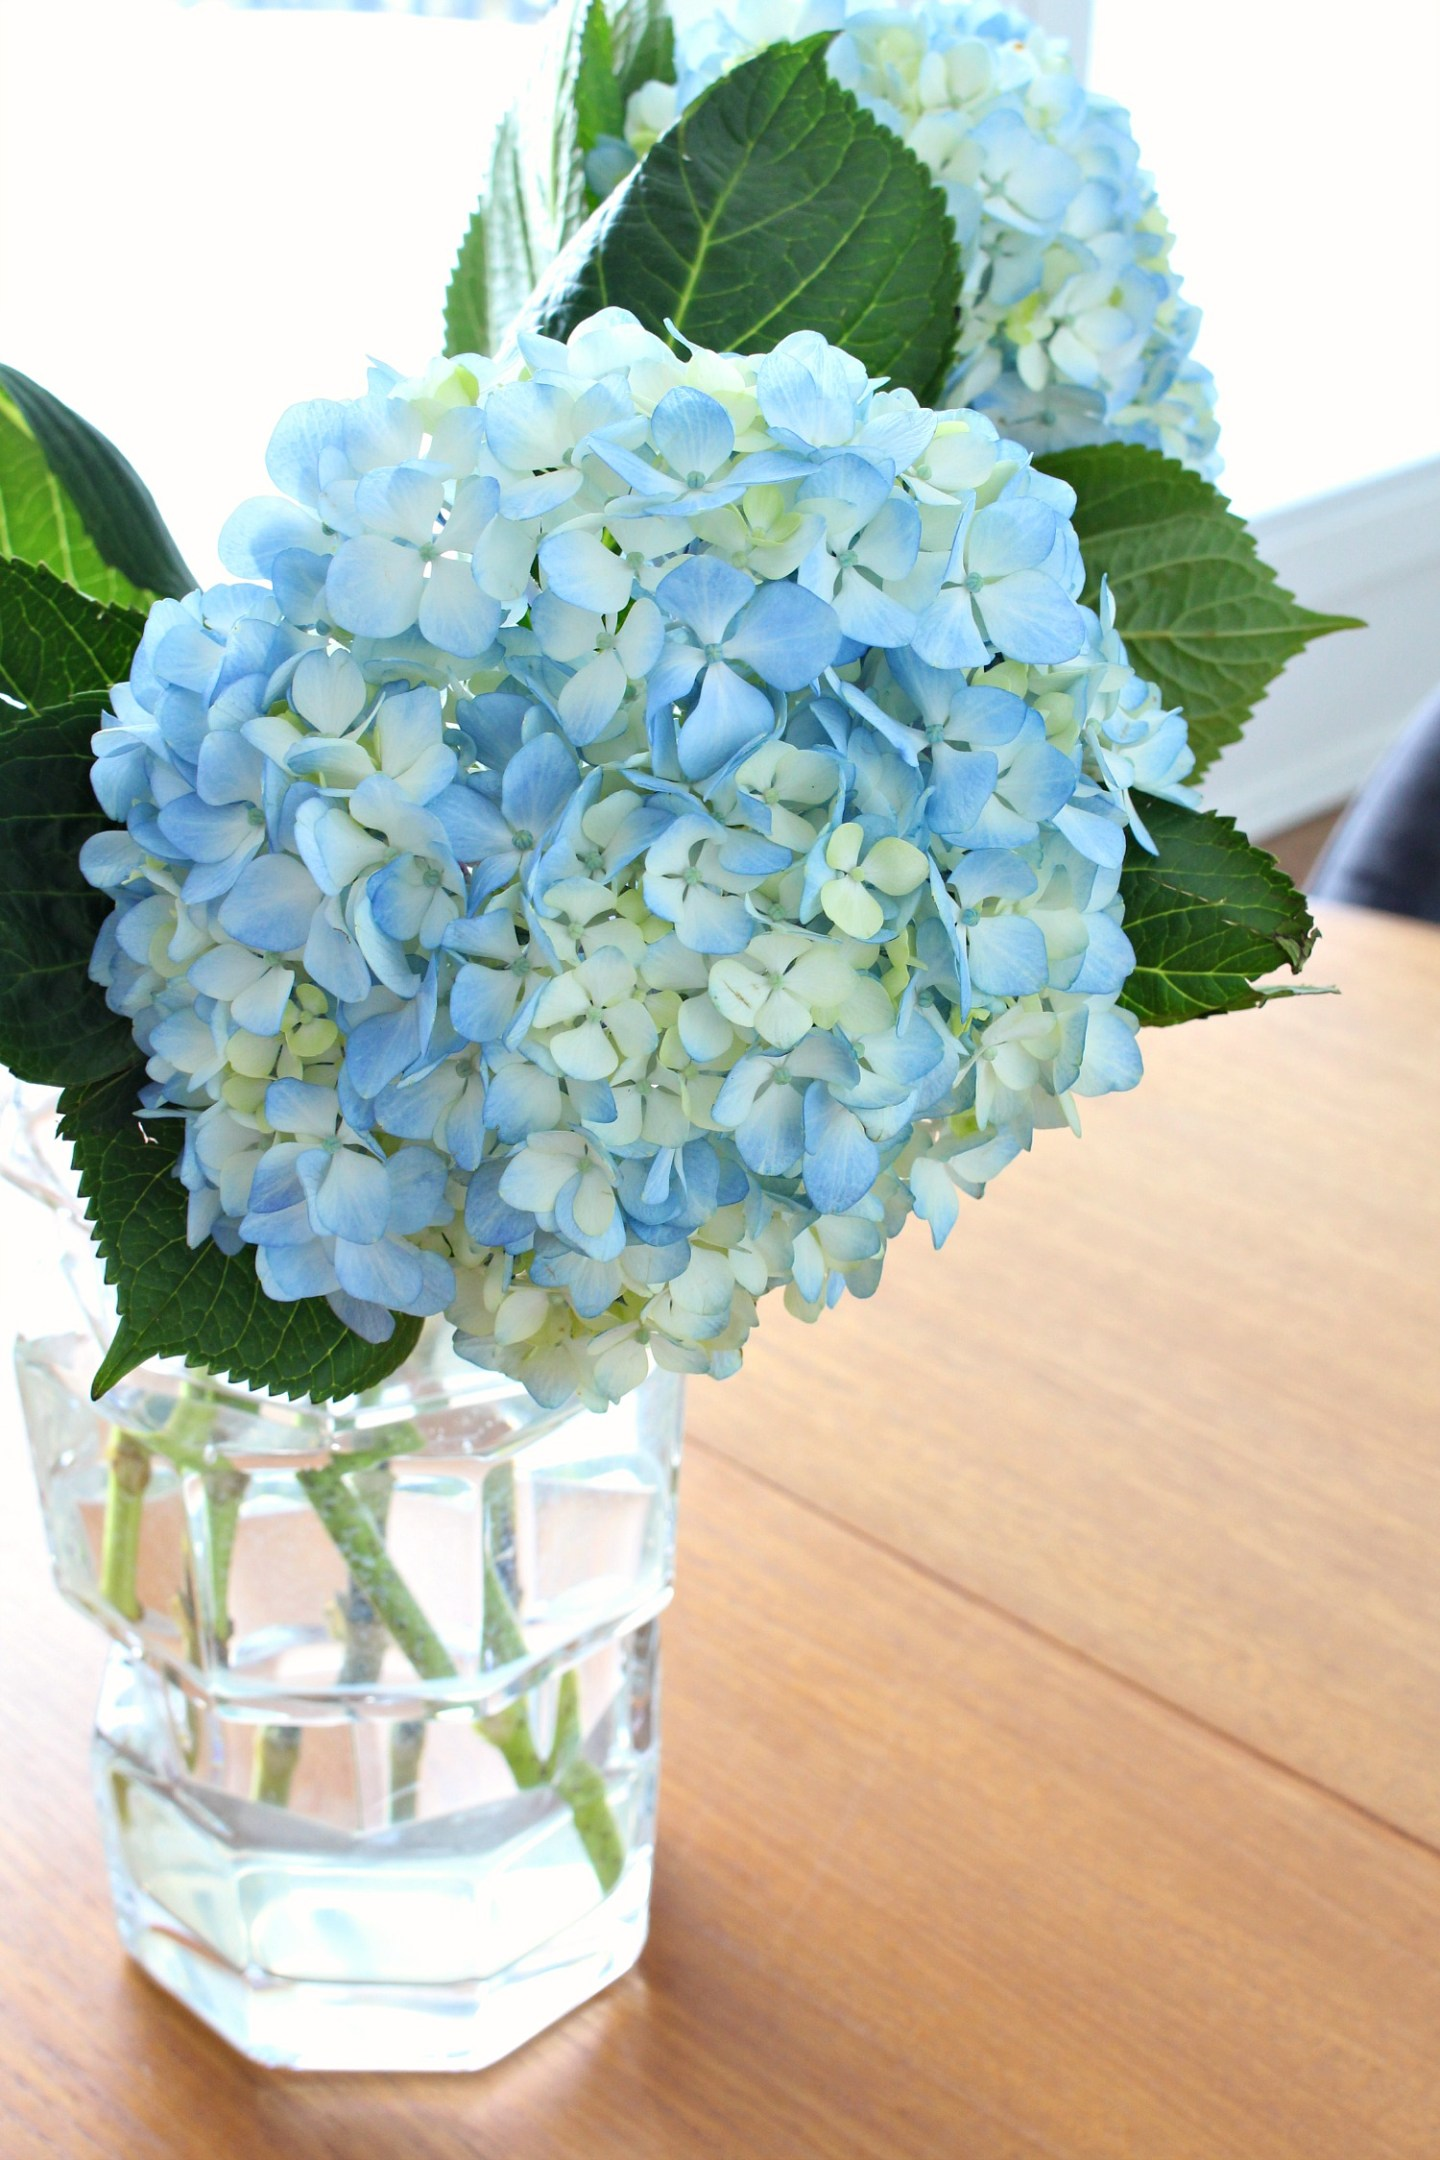 How to Prevent Hydrangeas from Wilting